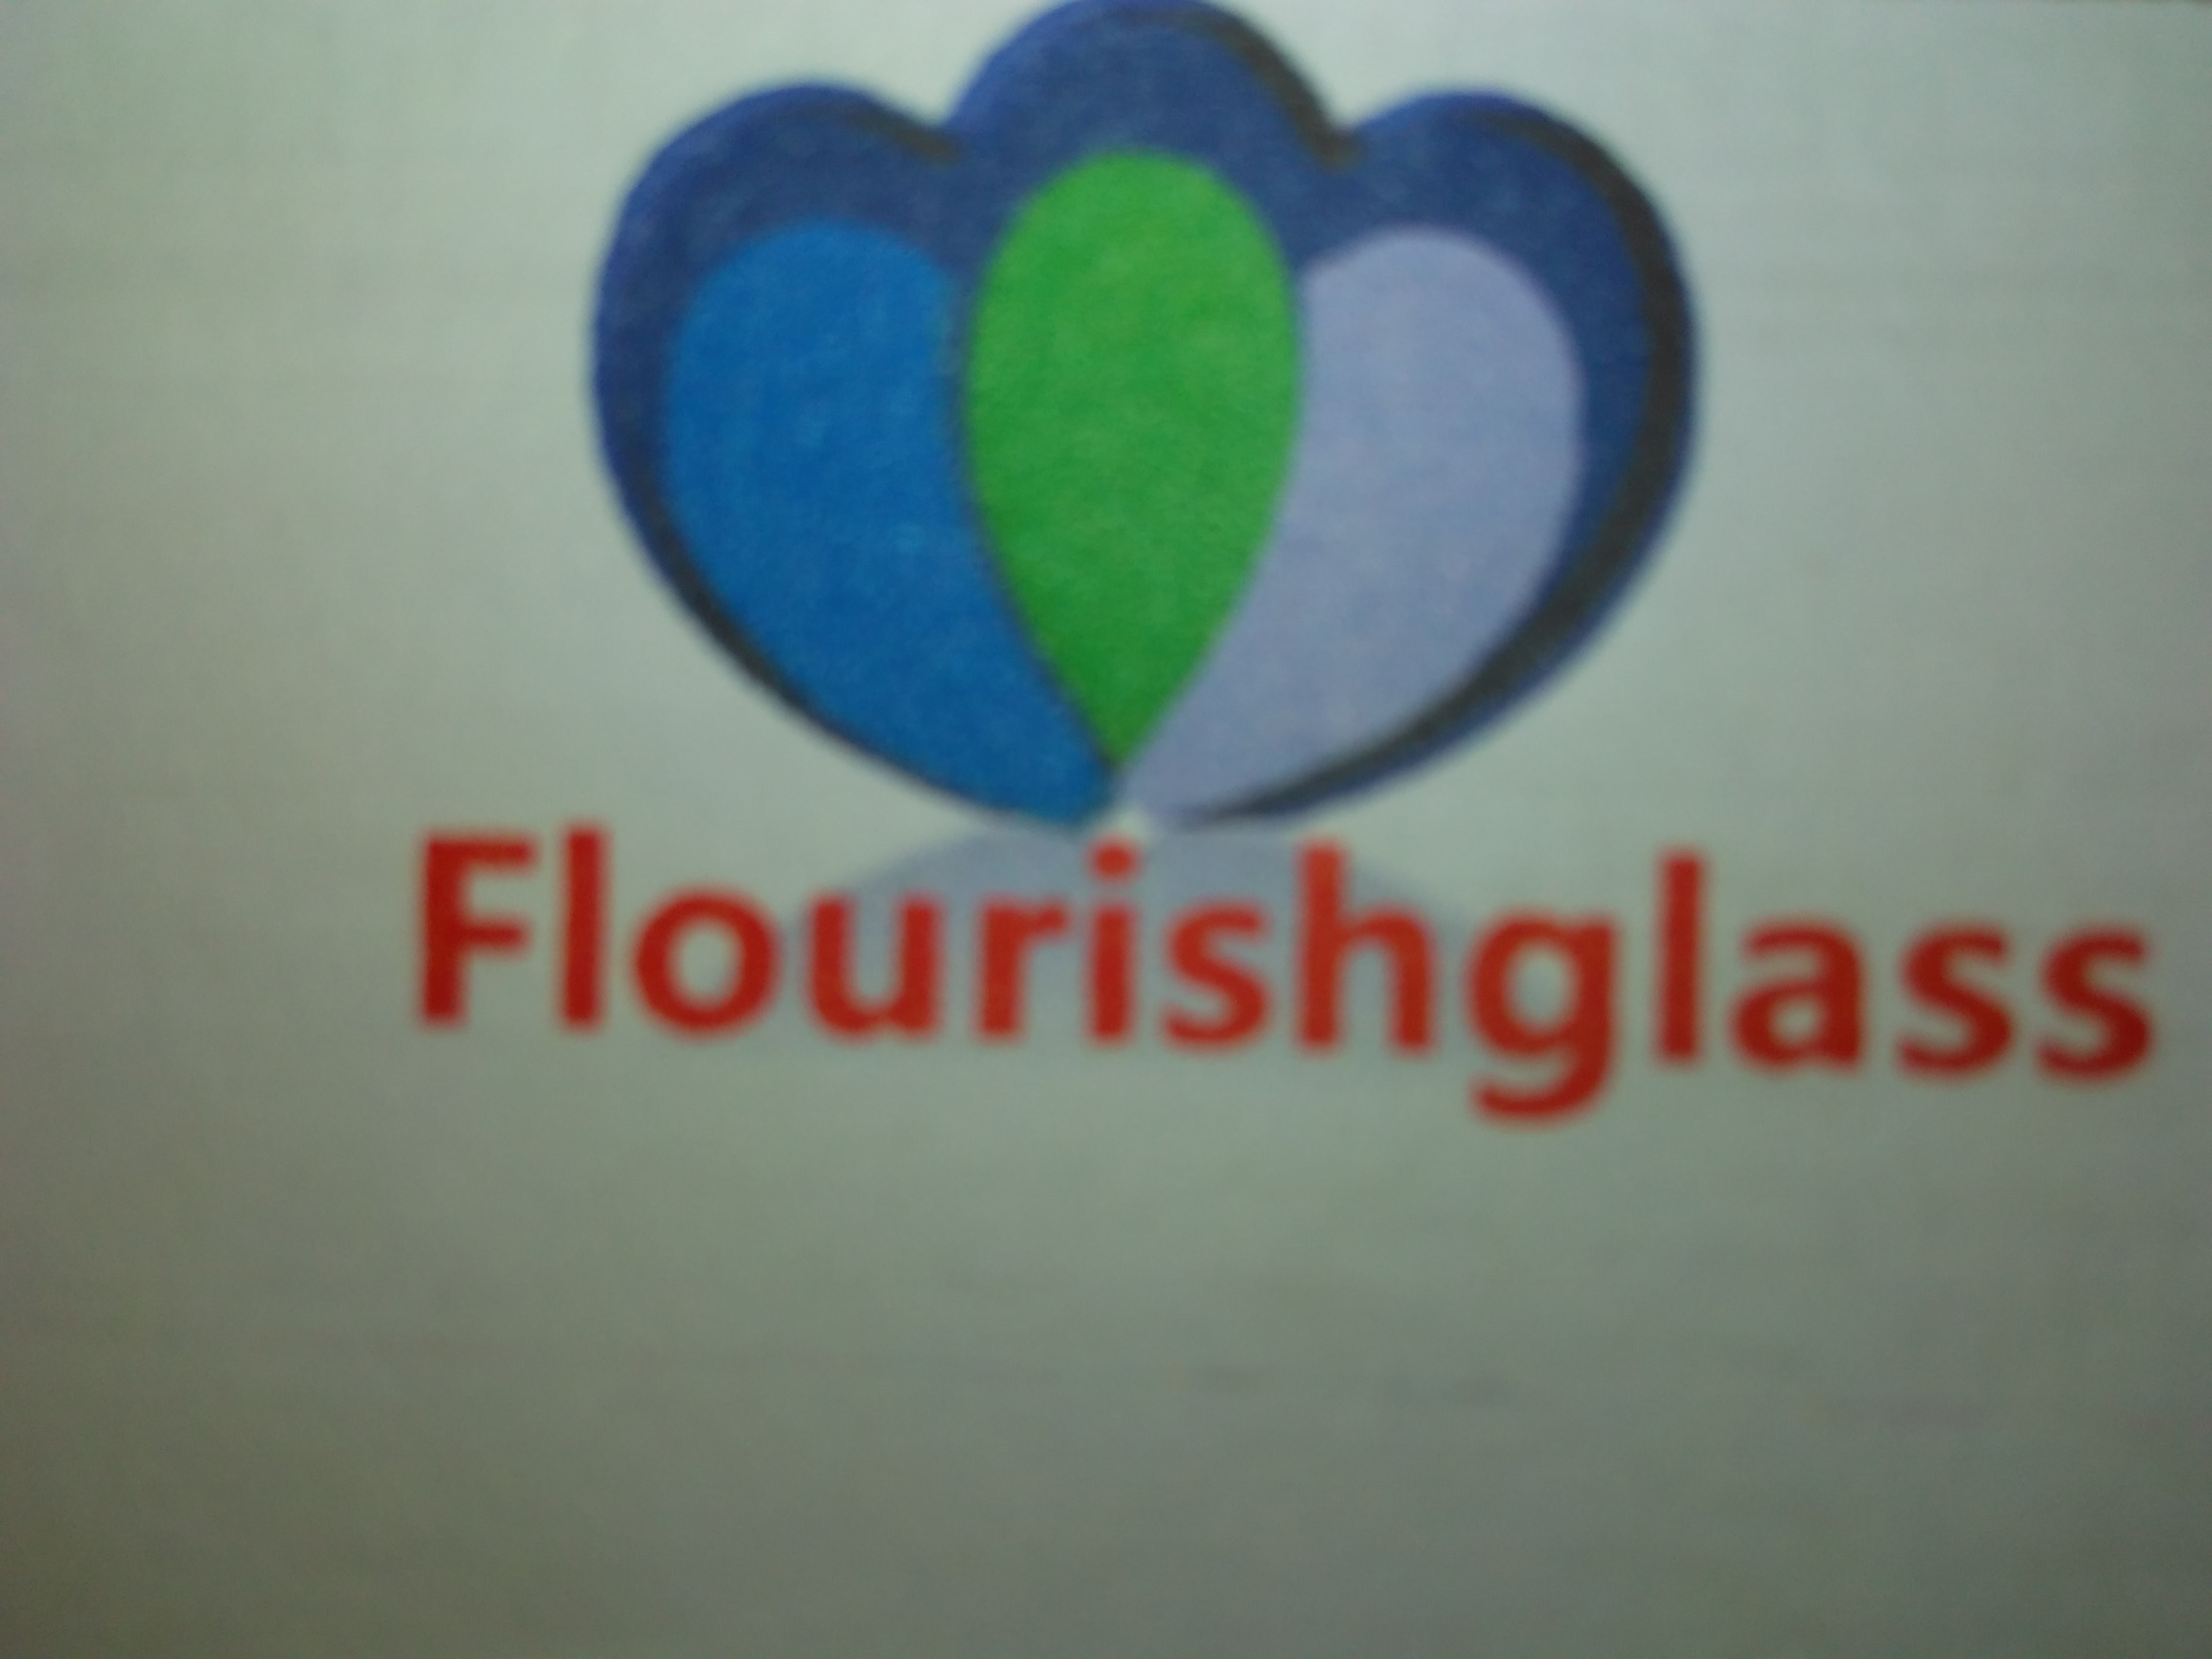 Nanjing Flourish Glass Co., Ltd.